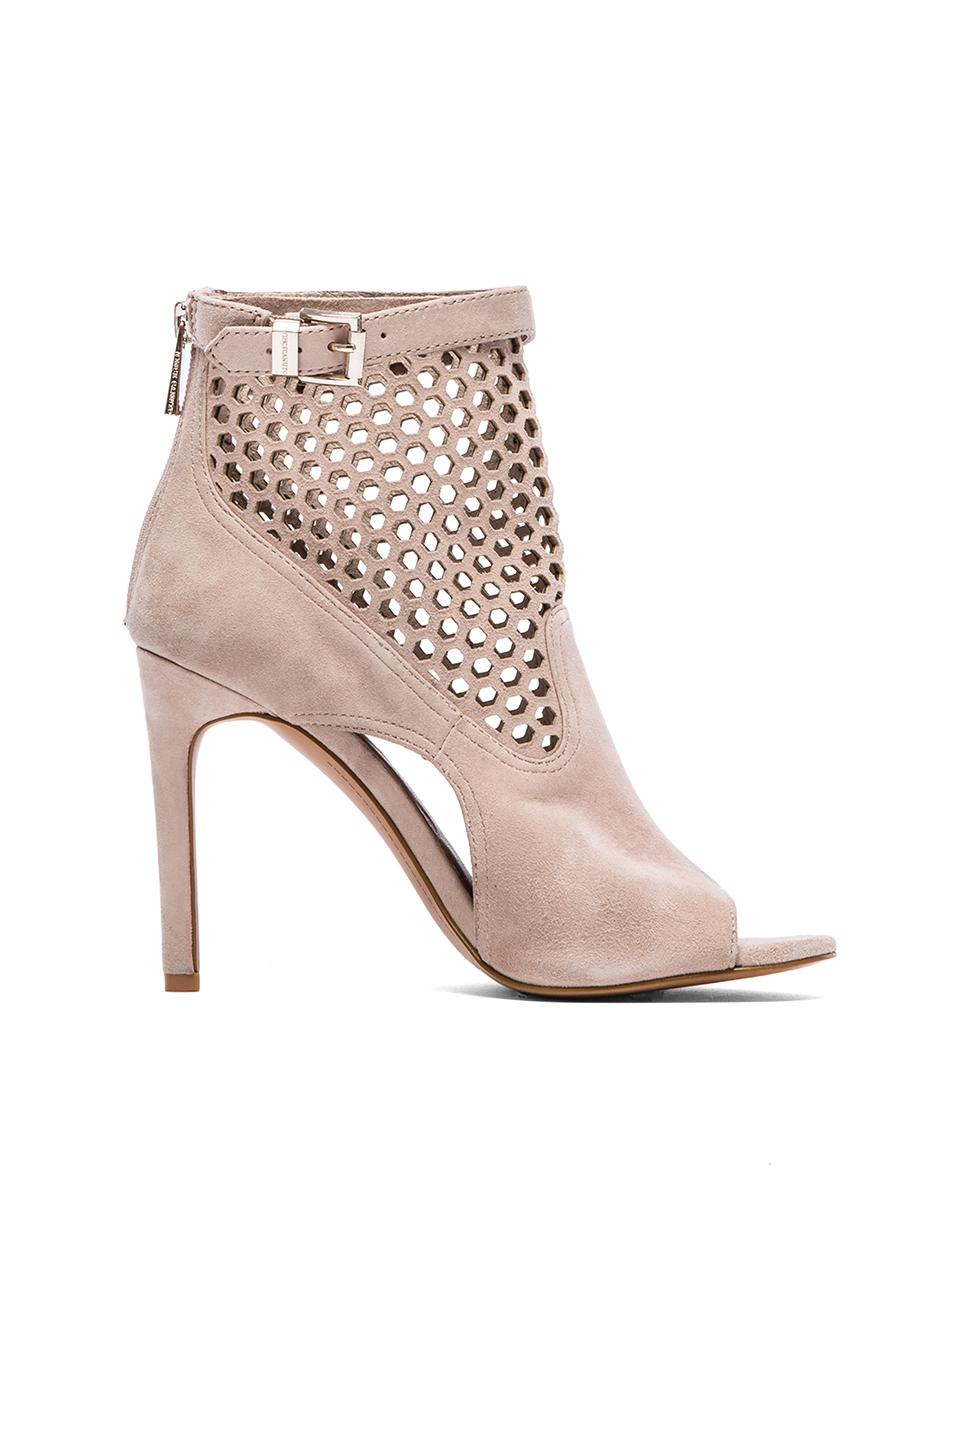 Vince Camuto Kolt Bootie in Cashmere Cream